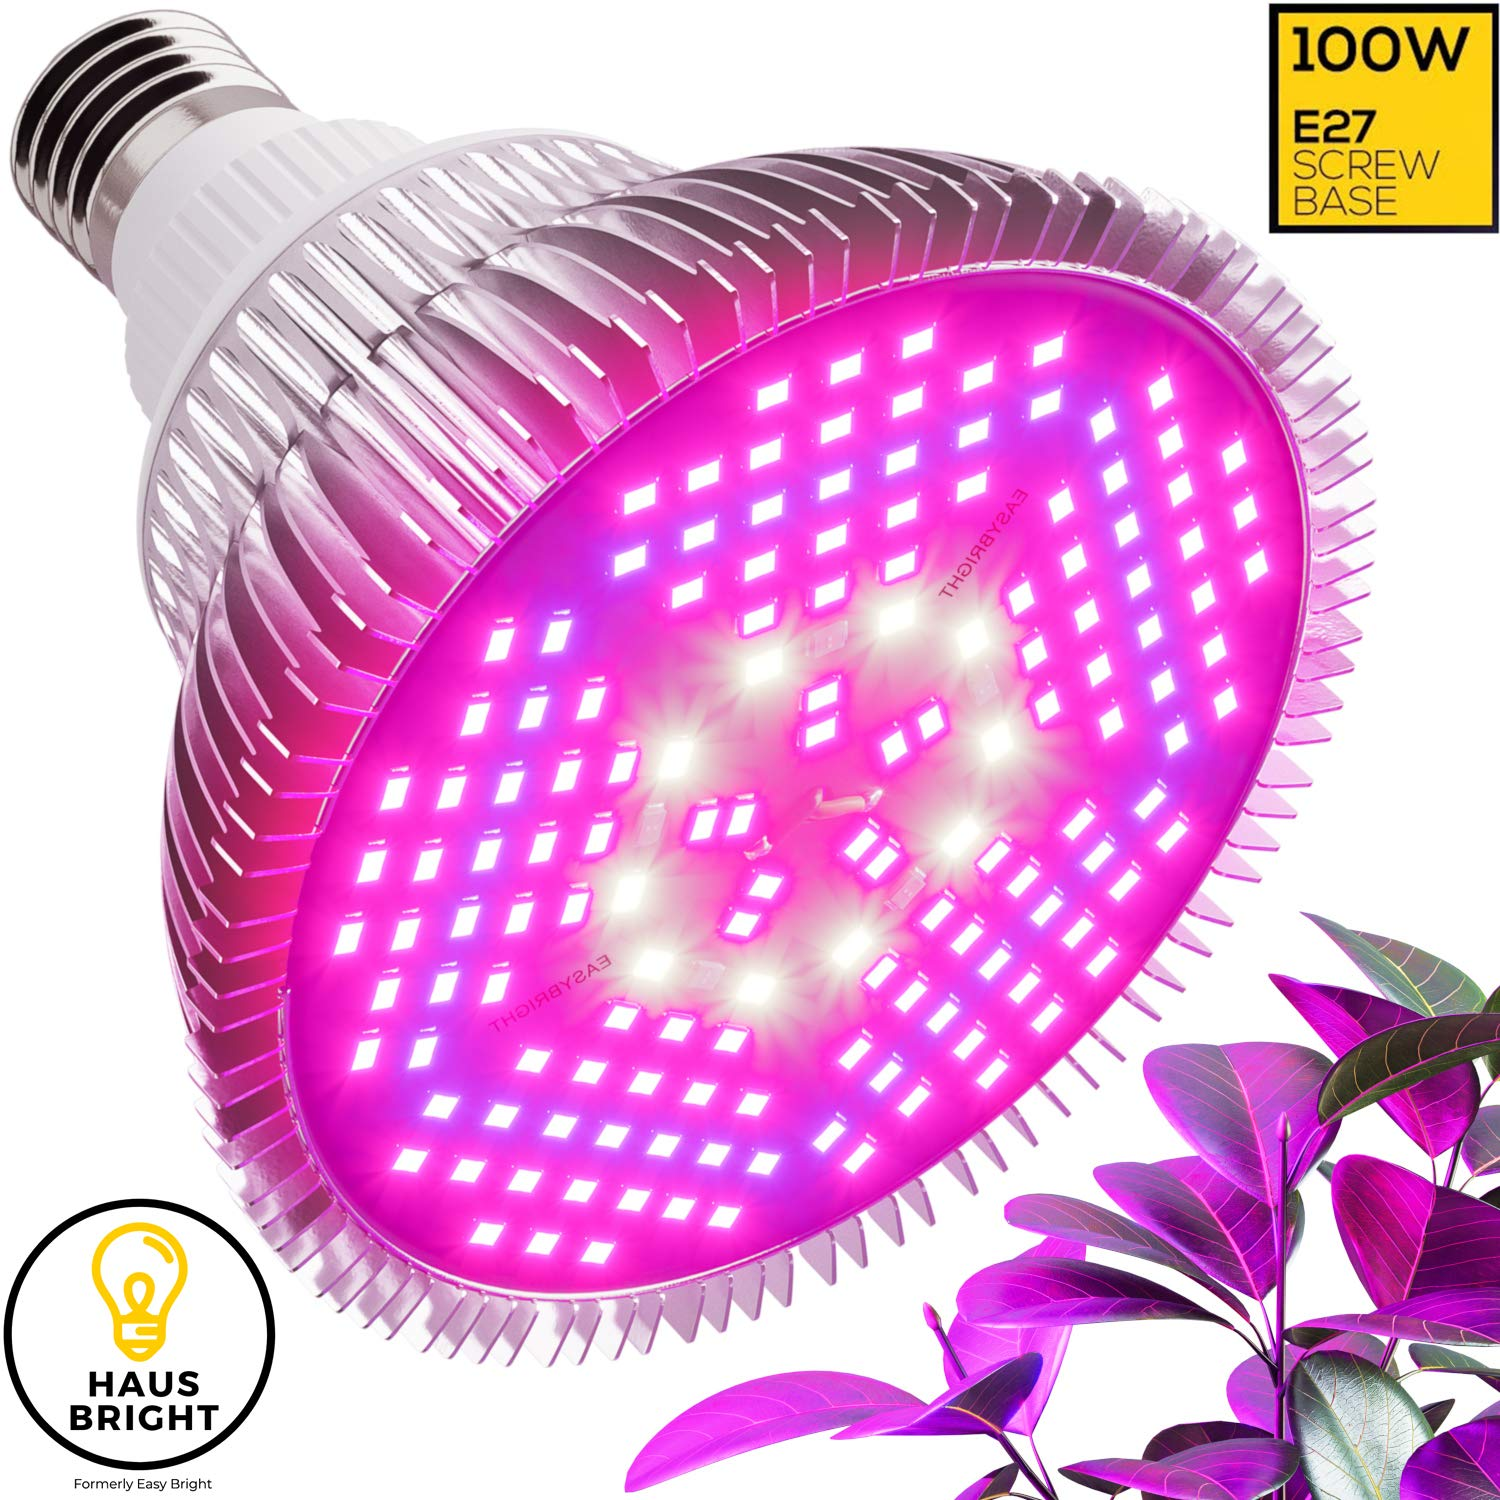 100W LED Grow Light Bulb - Full Spectrum Lamp for Indoor Plants, Garden,  Flowers, Vegetables, Greenhouse & Hydroponic Growing | E27 Base 150 LEDs